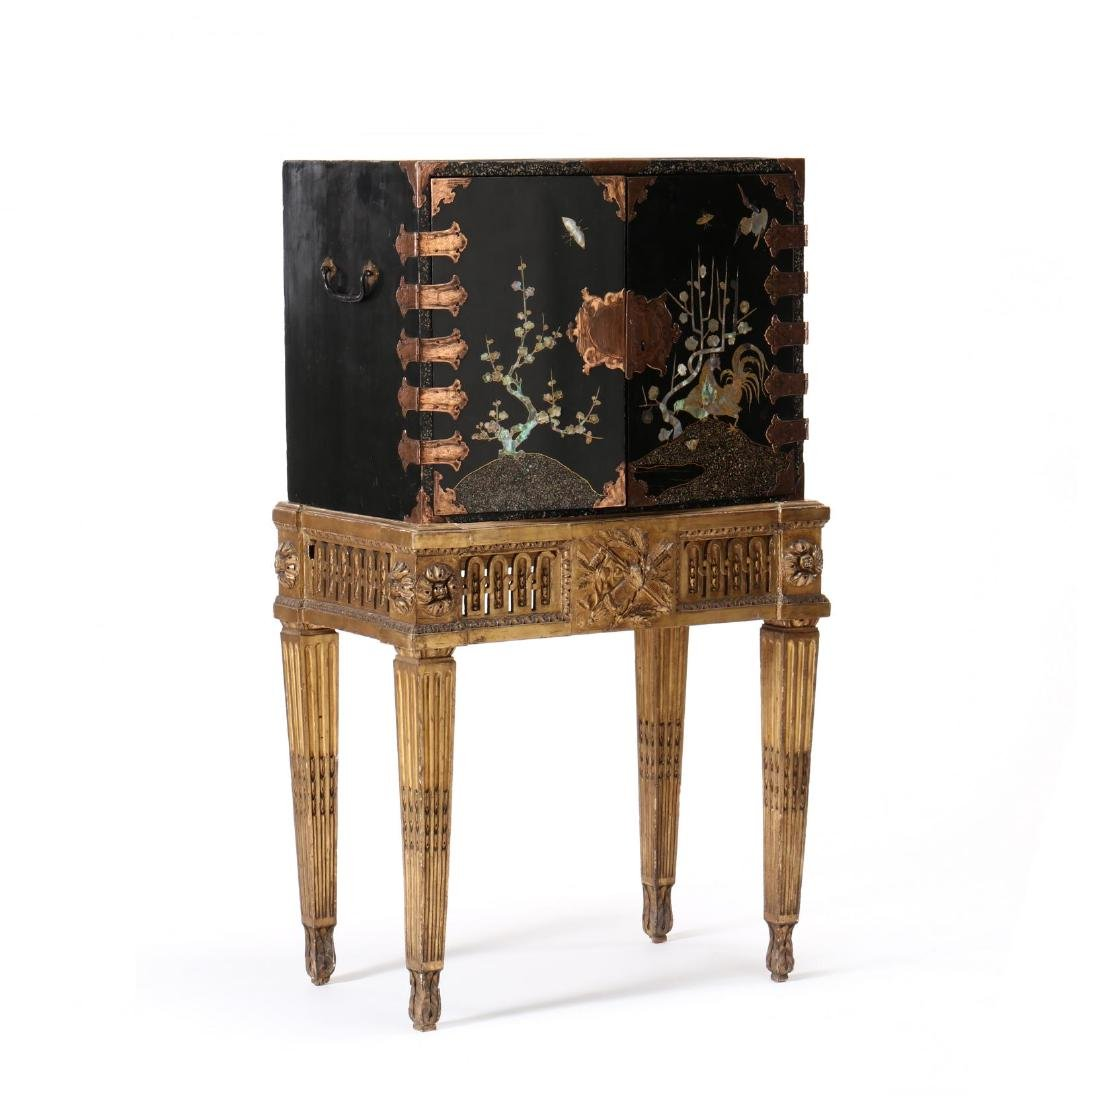 A Japanese Lacquered Cabinet on a Carved Giltwood Stand